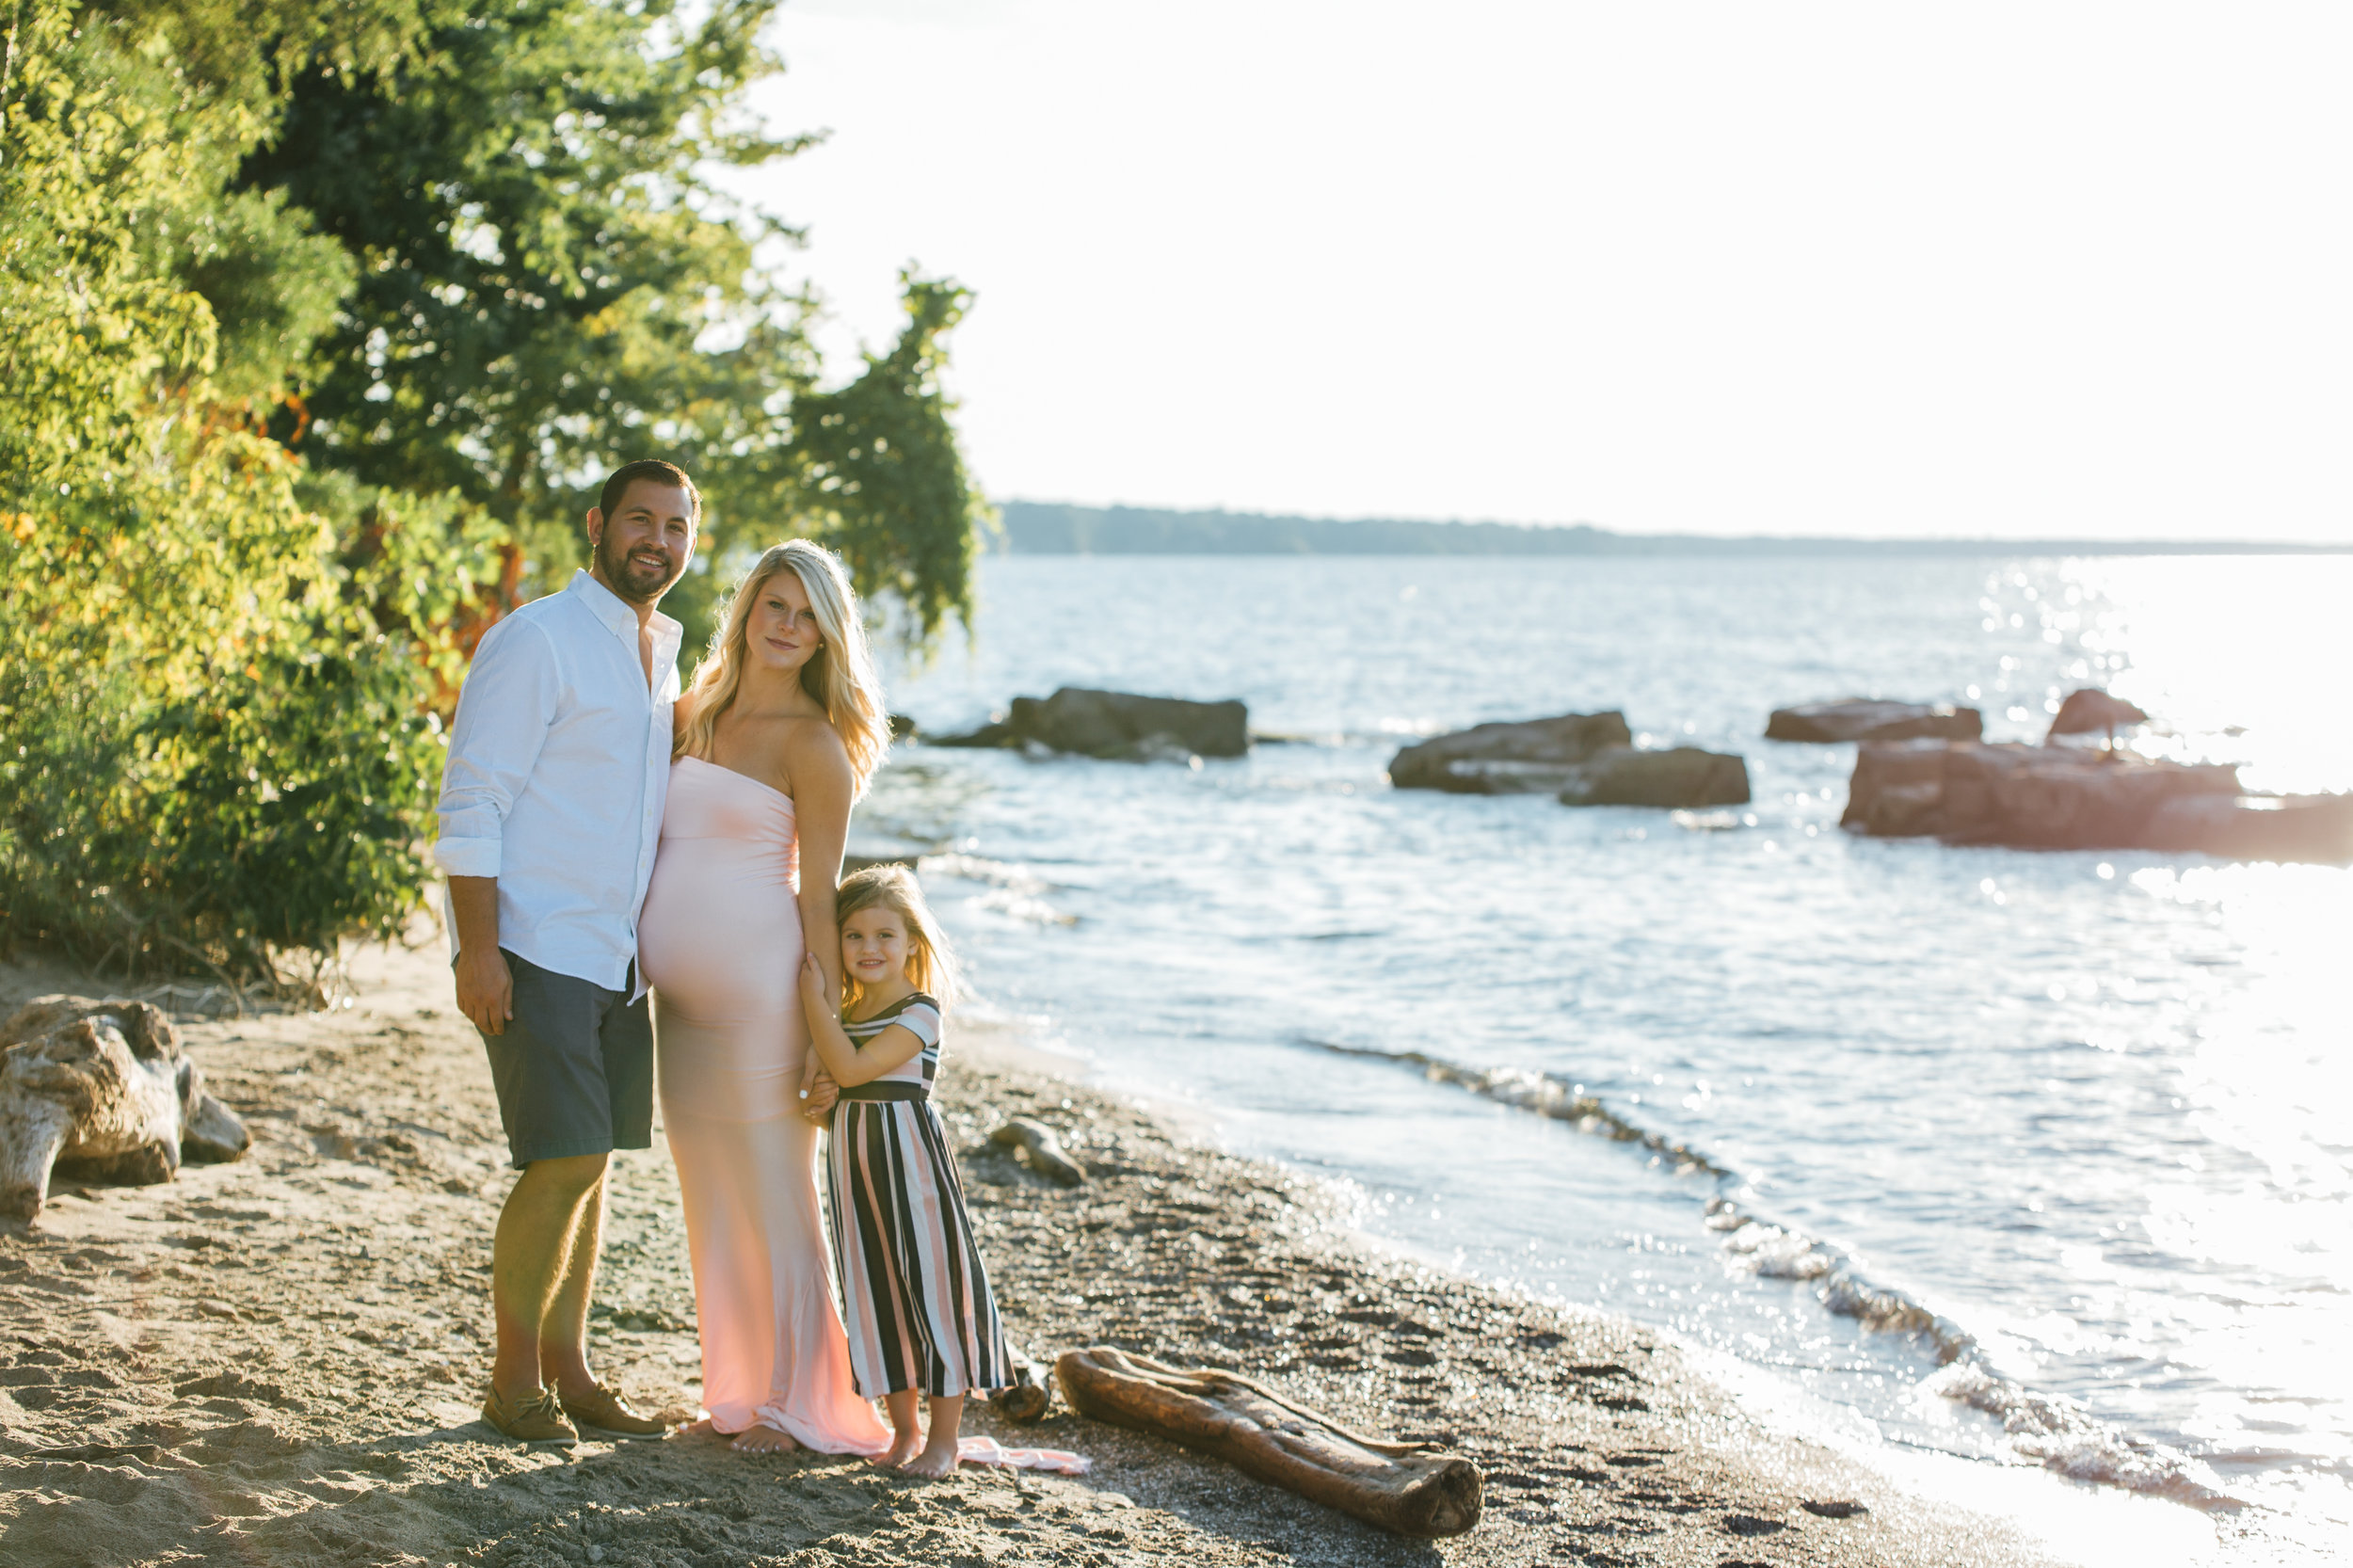 Carrie Hall Photography // Cleveland, Ohio // Lifestyle Maternity Photographer